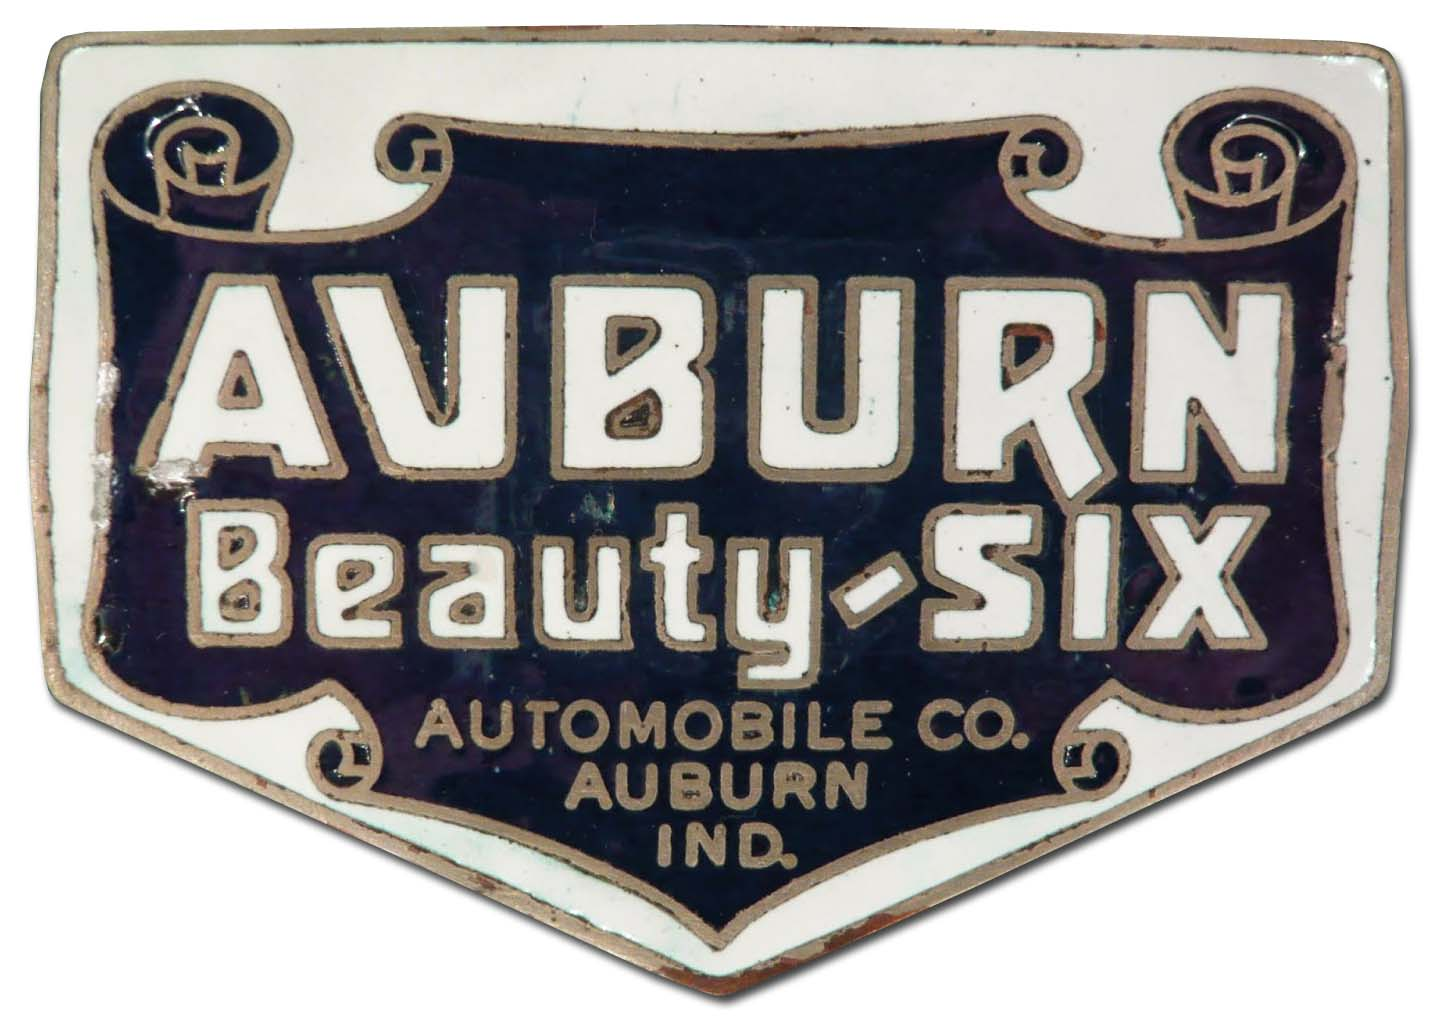 Auburn Beauty-Six (1919-1923 grill emblem)